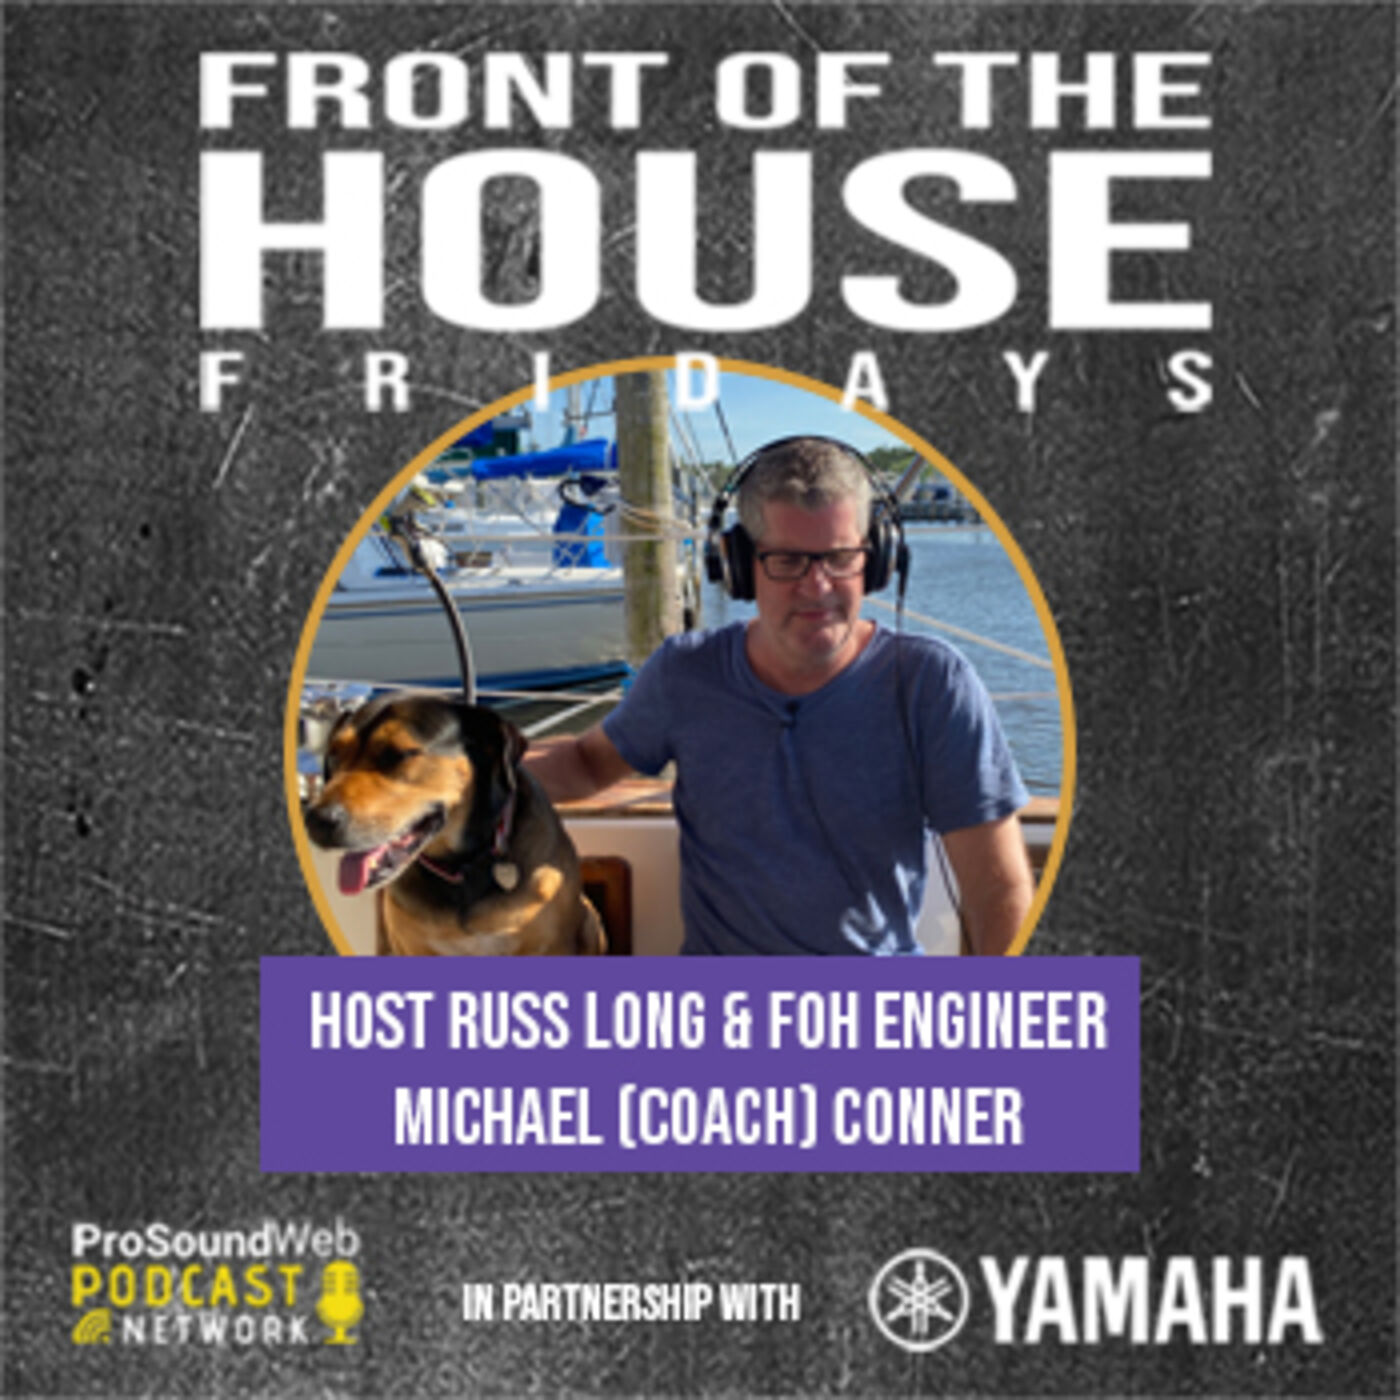 Episode 4: FOH Engineer Michael (Coach) Conner